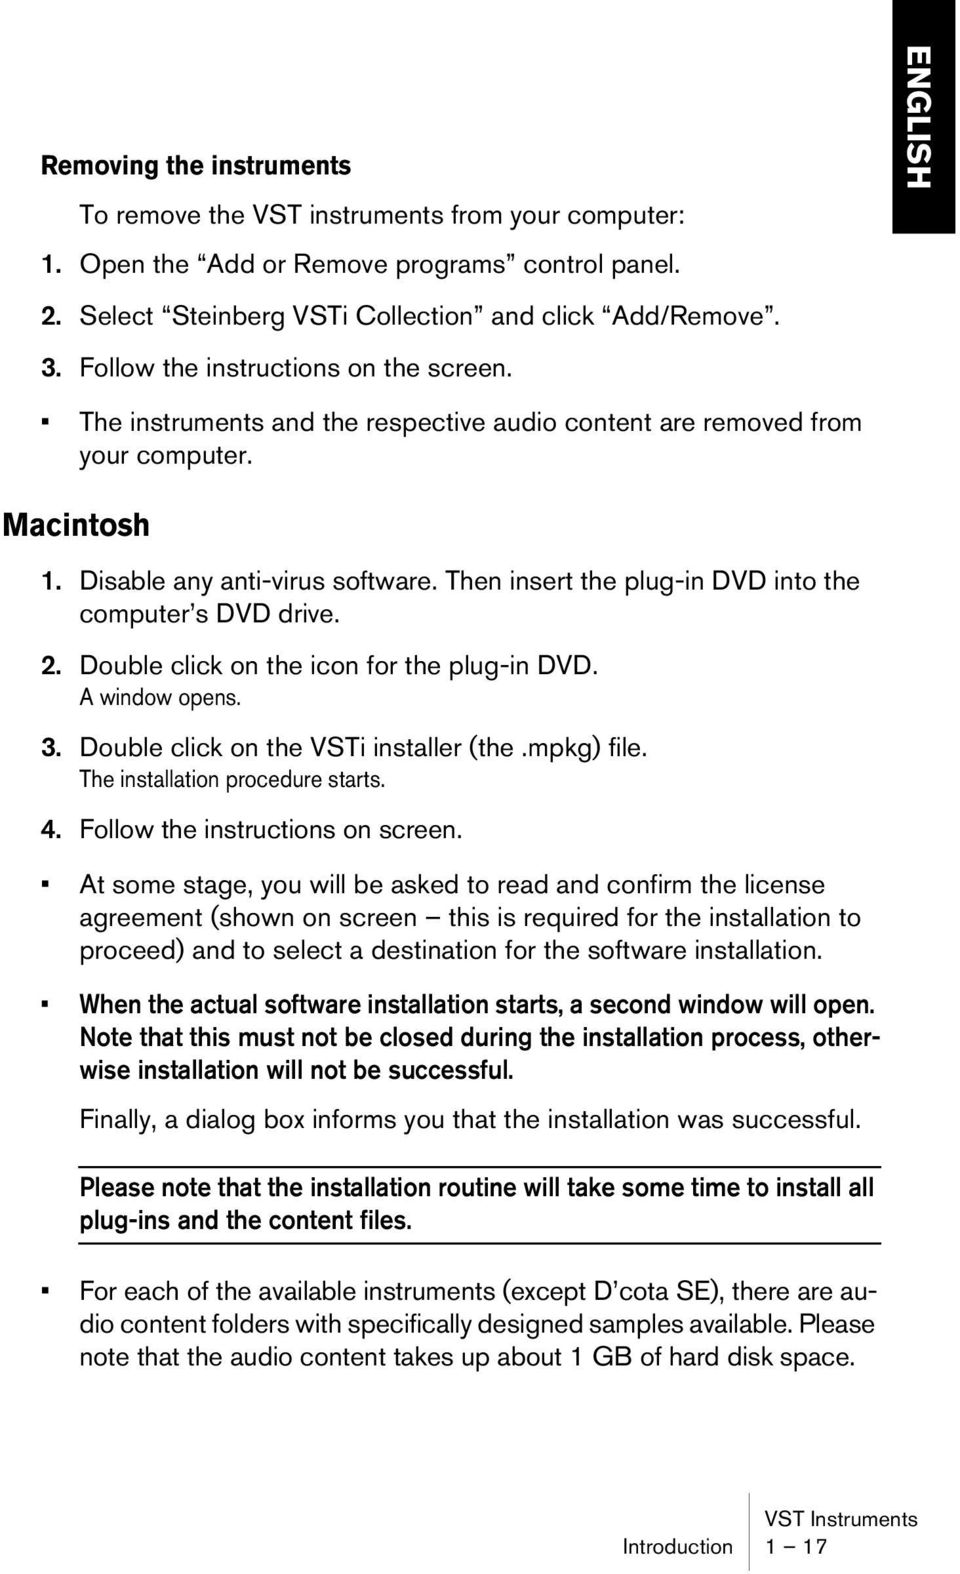 Then insert the plug-in DVD into the computer s DVD drive. 2. Double click on the icon for the plug-in DVD. A window opens. 3. Double click on the VSTi installer (the.mpkg) file.